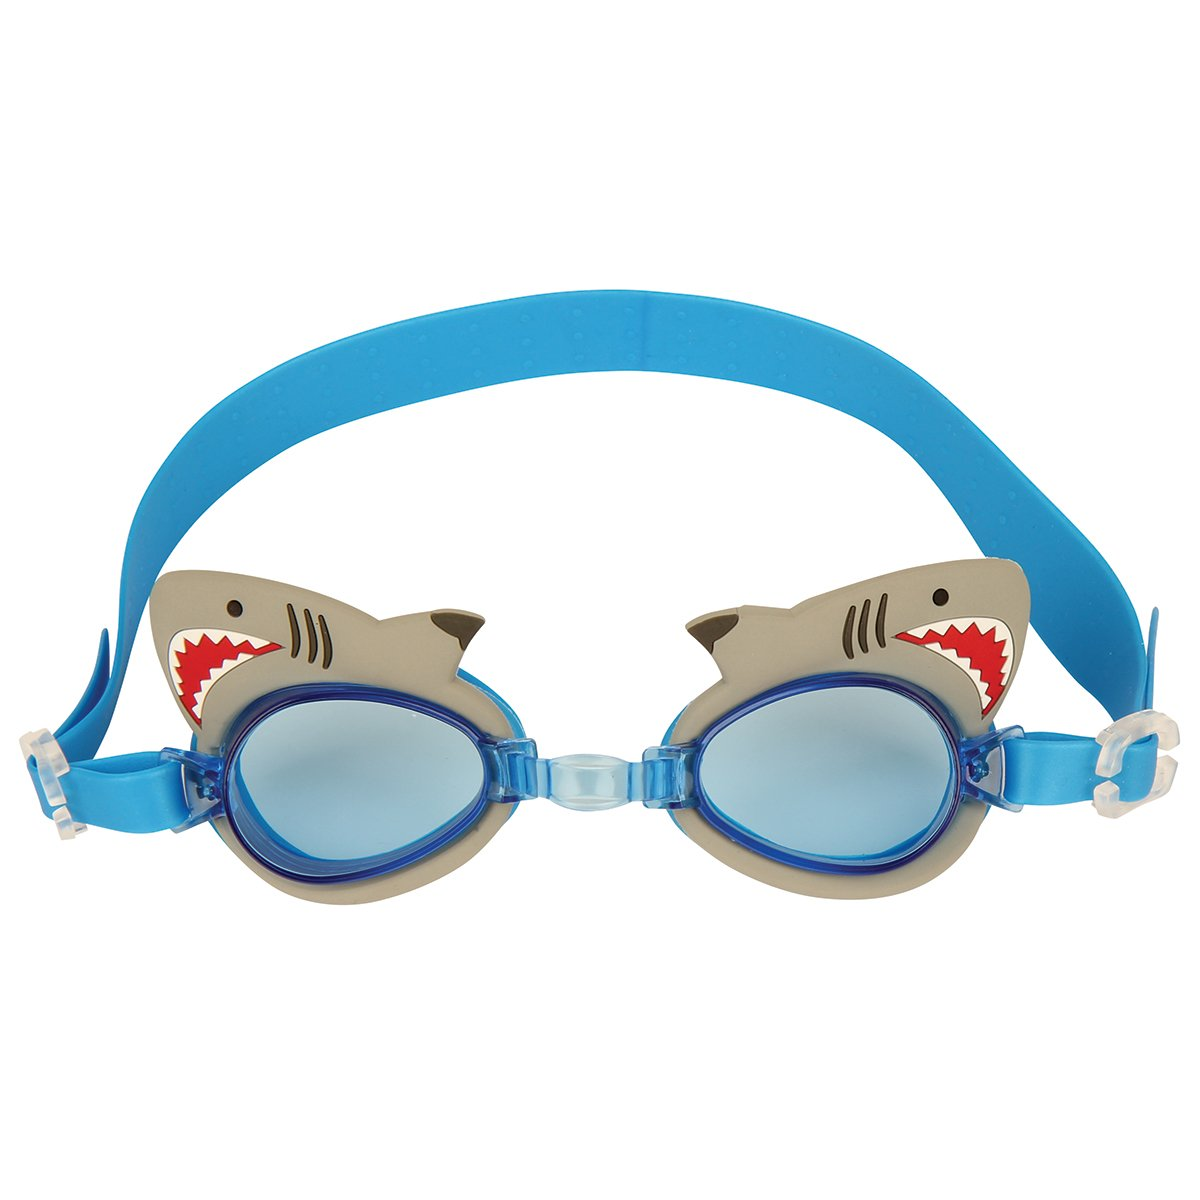 Stephen Joseph Swim Goggles, Shark